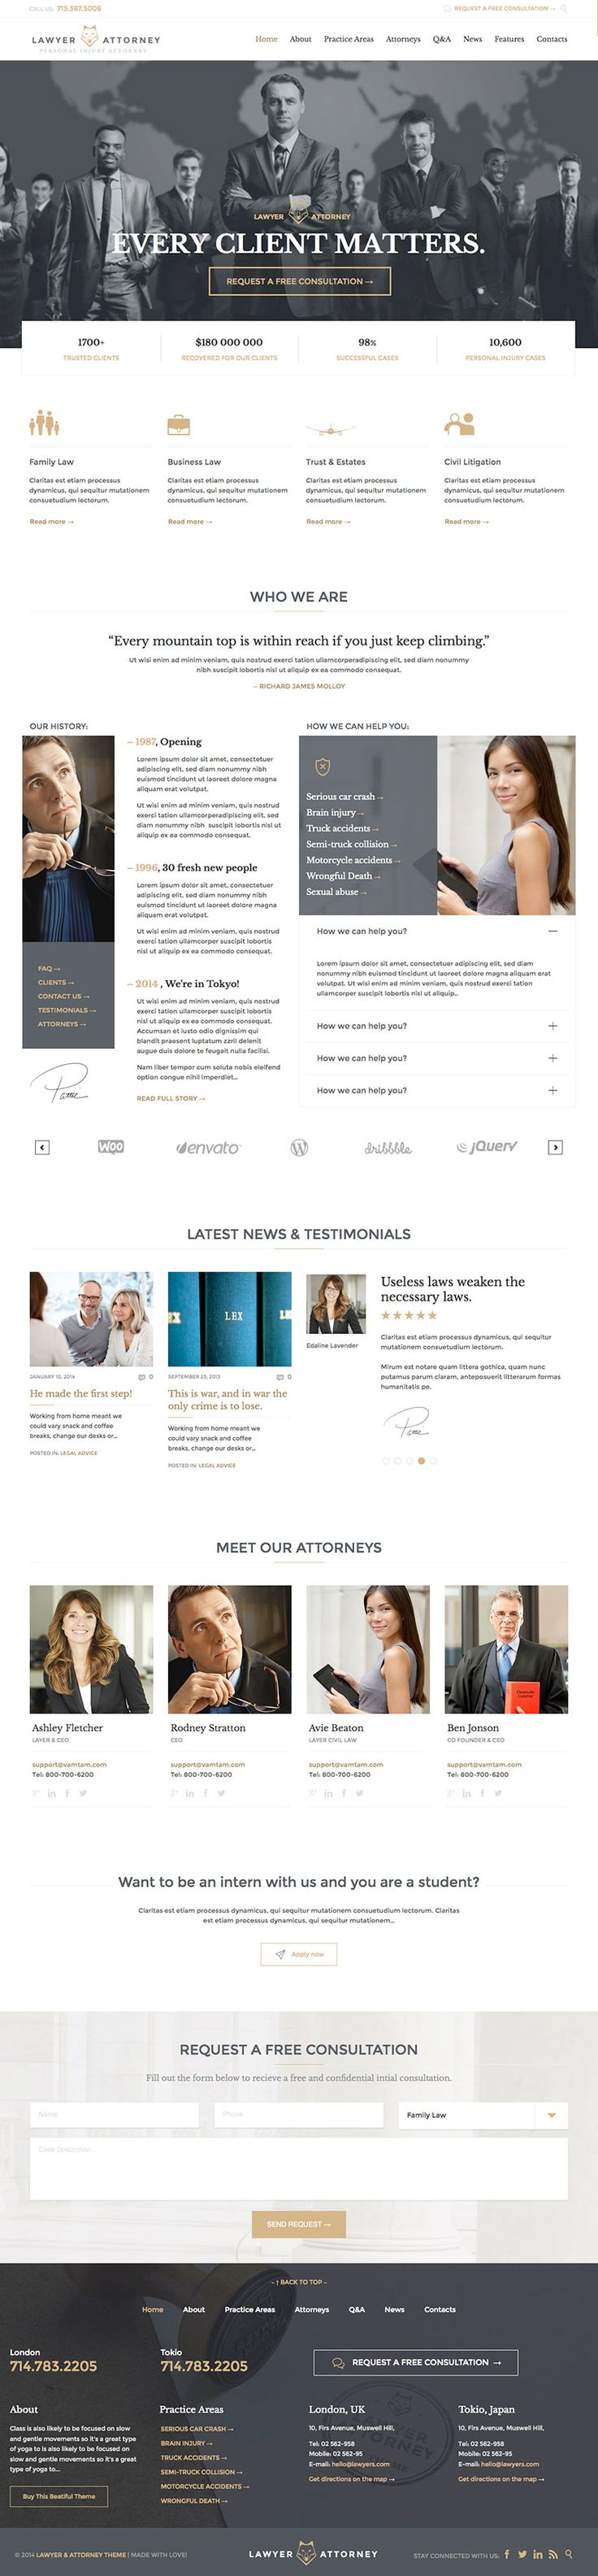 - 8660ed06907235e4a29da1c21de57722  law firm website lawyer website - Lawyers Attorney Legal Office WordPress Theme